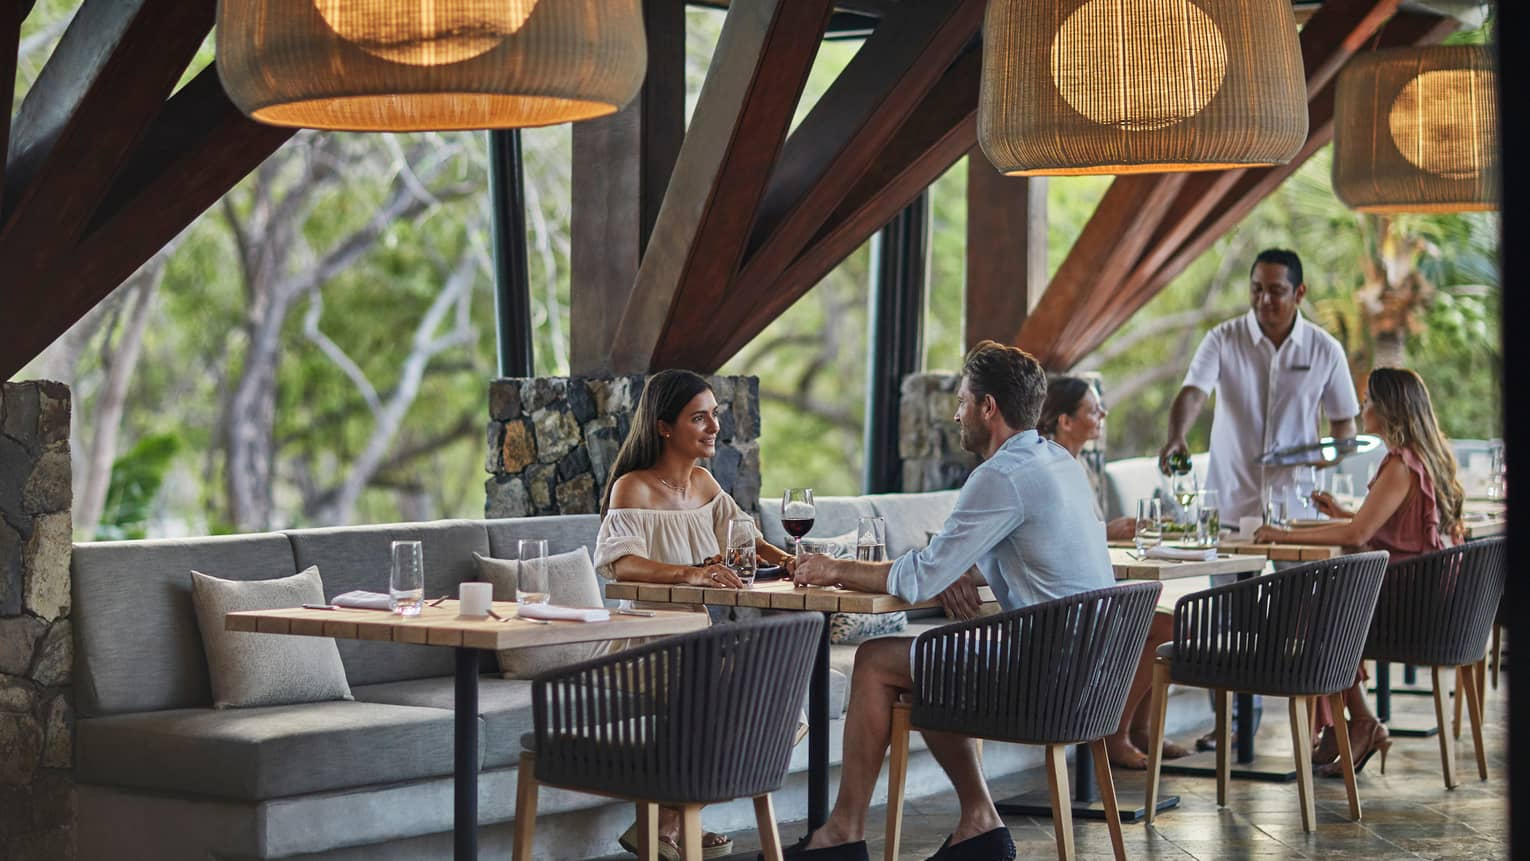 Couples dine at Bahia patio tables on long grey banquette, under large round bamboo lights